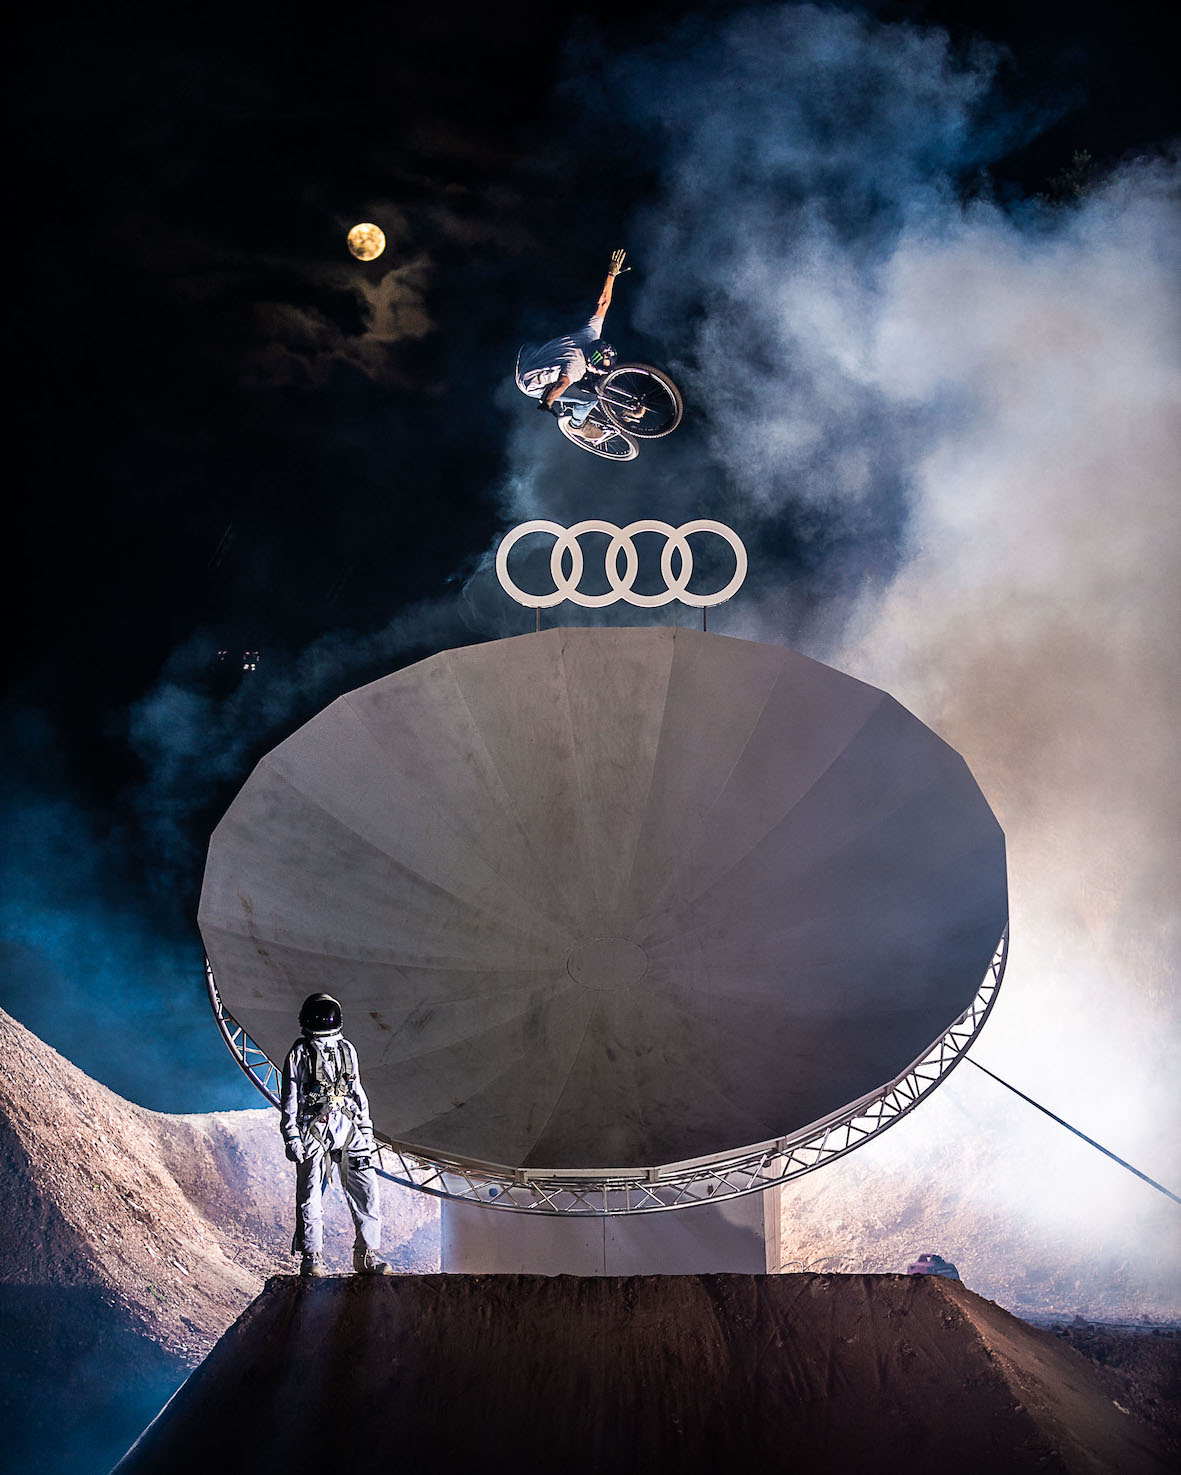 Max Fredriksson sending at during the Audi Nines night session